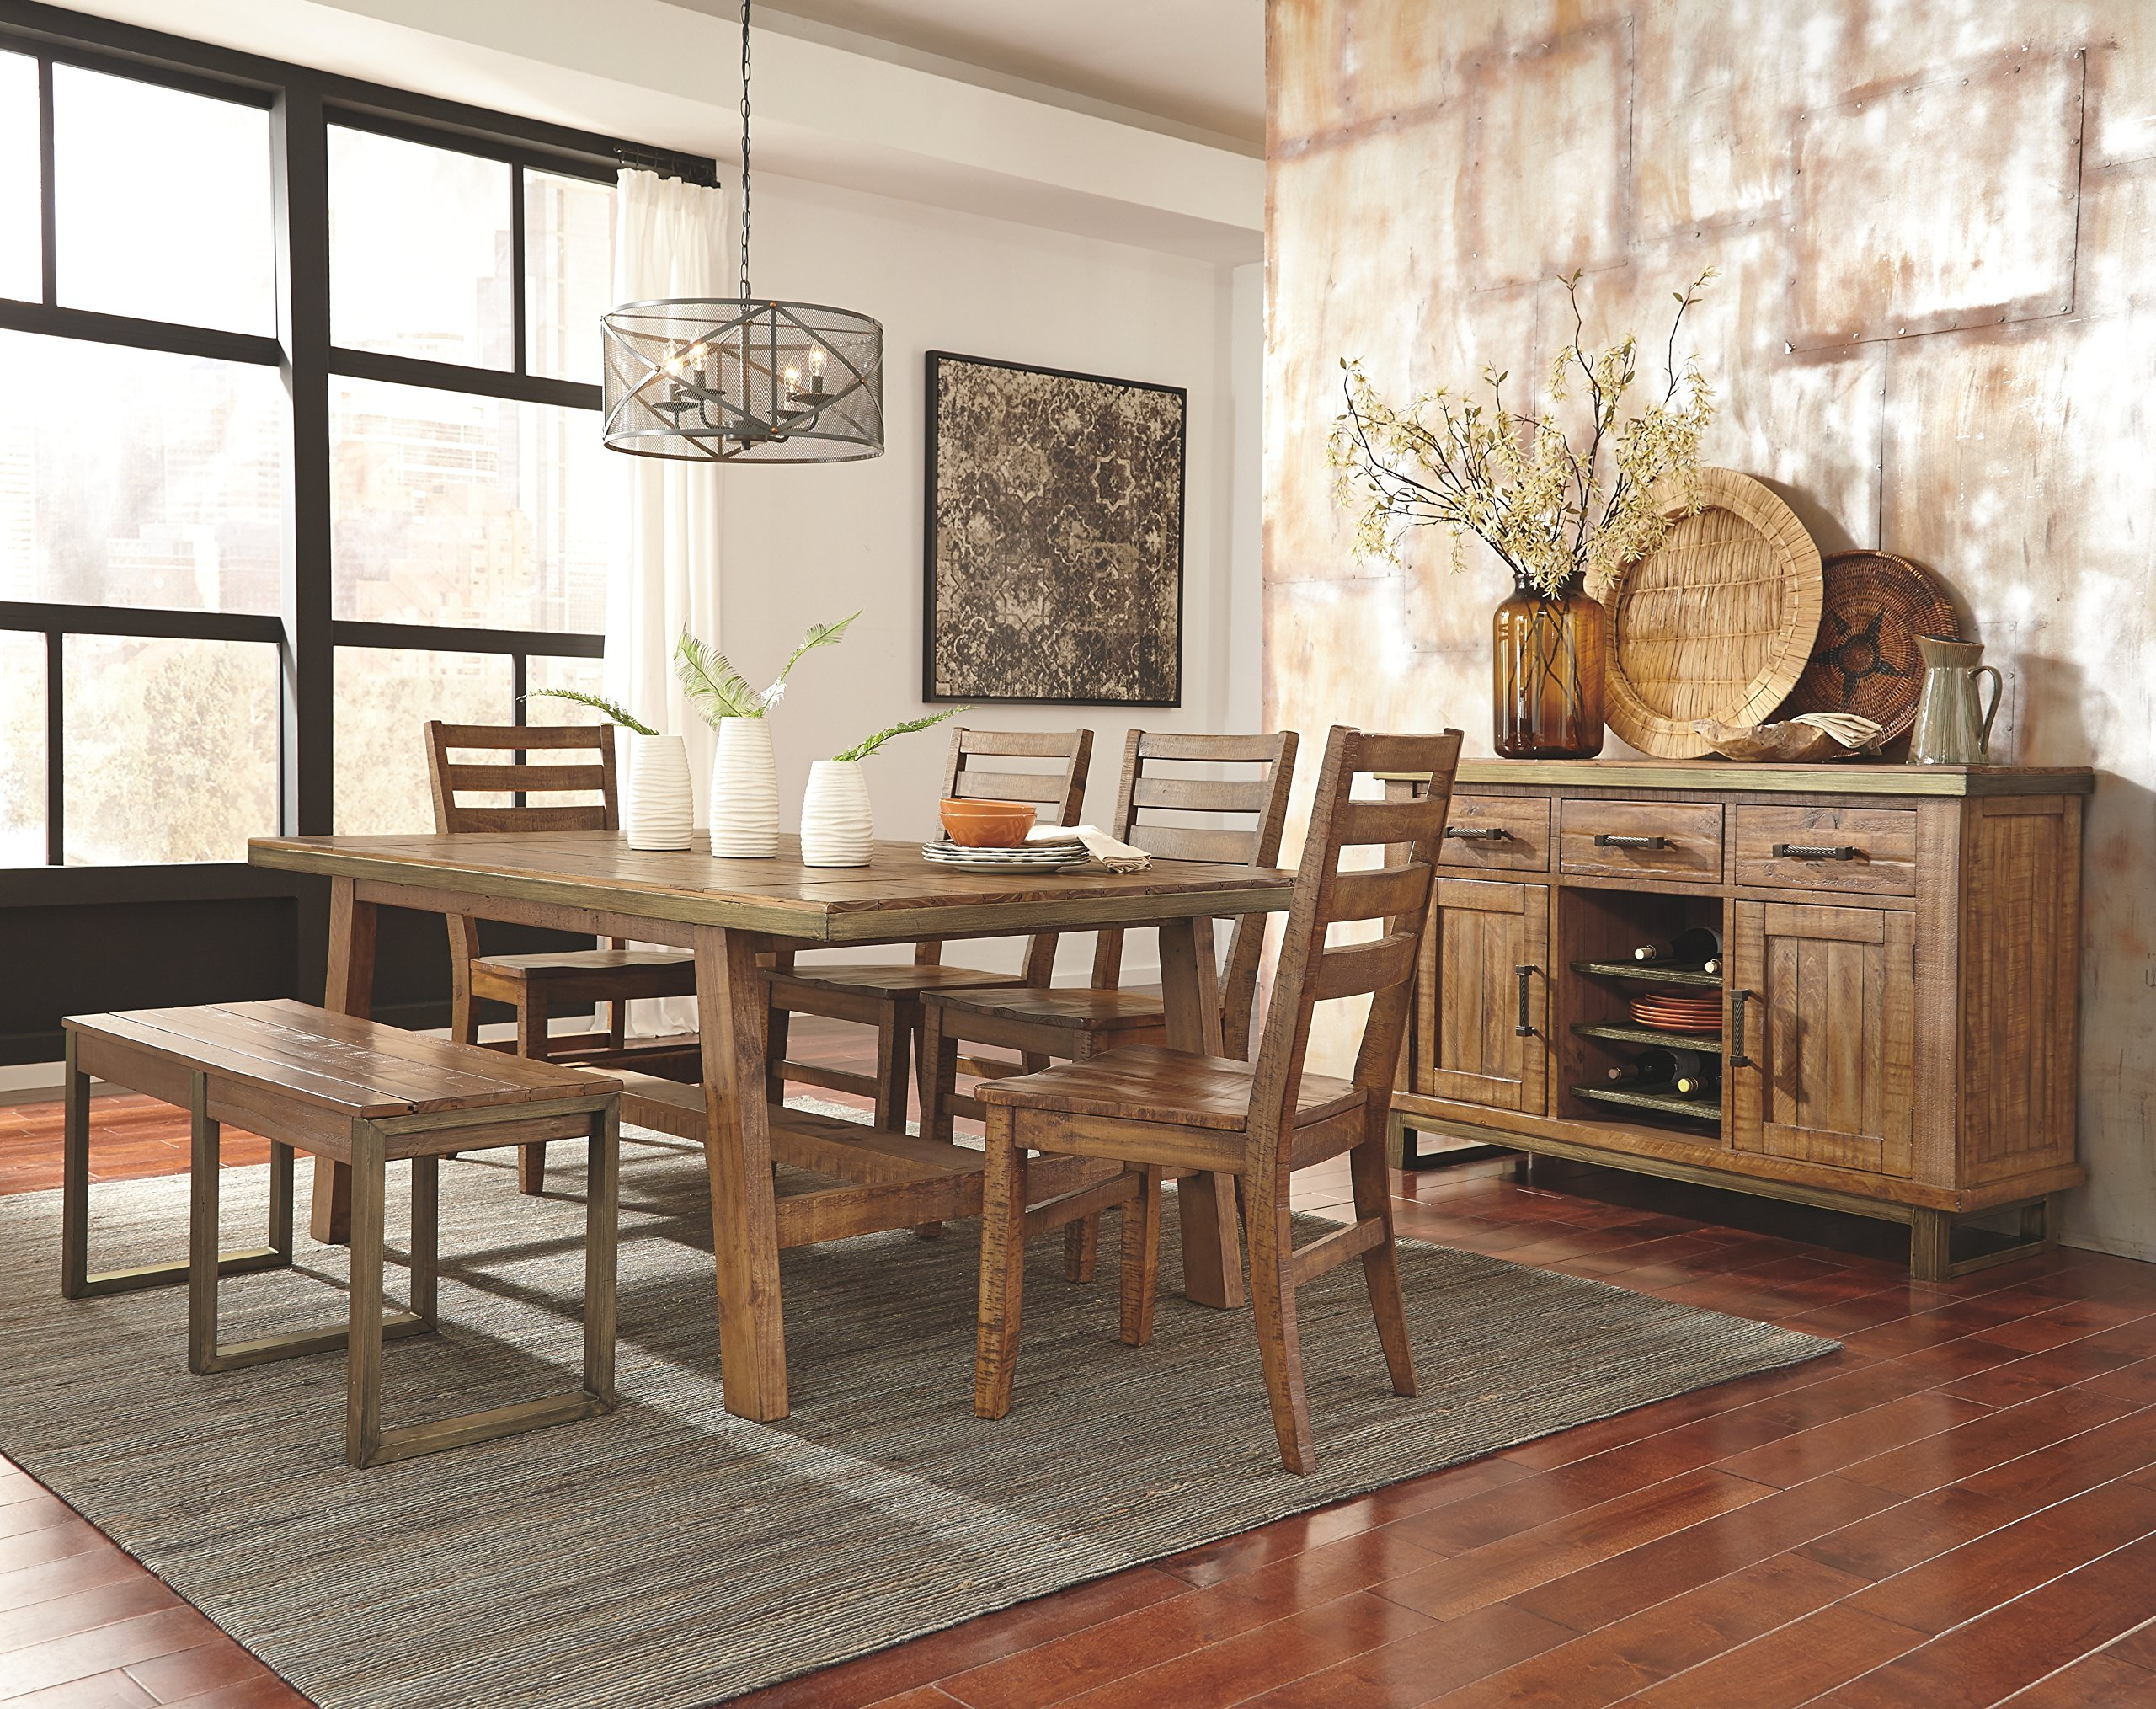 Ashley Furniture Signature Design - Dondie Dining Room Bench - Solid Pine Wood with Distressed Finish - Warm Brown by Signature Design by Ashley (Image #4)